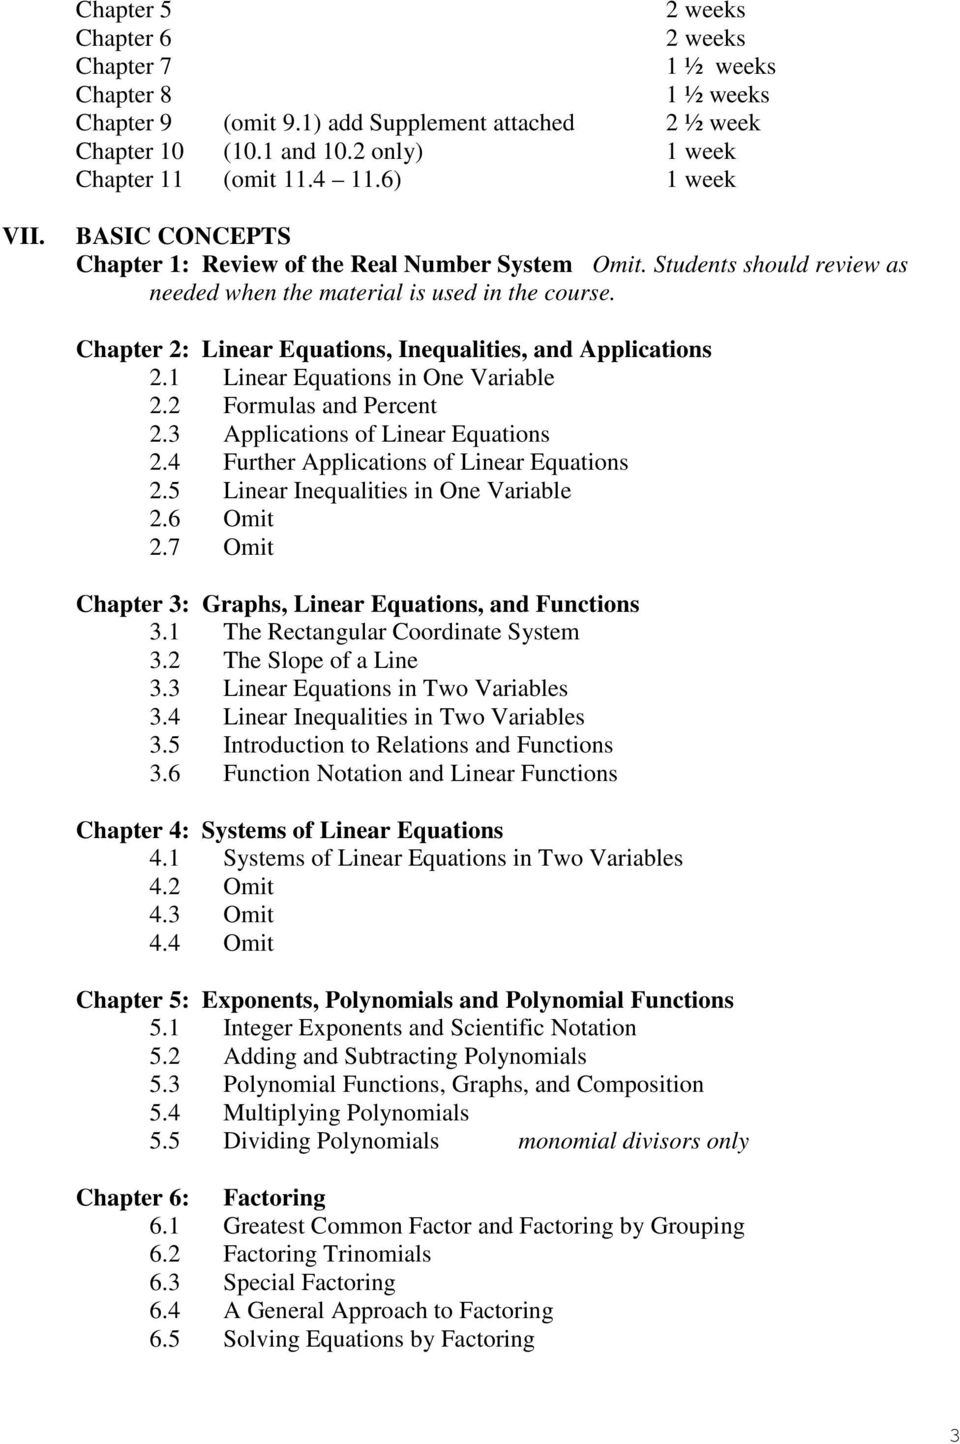 Chapter 2: Linear Equations, Inequalities, and Applications 2.1 Linear Equations in One Variable 2.2 Formulas and Percent 2.3 Applications of Linear Equations 2.